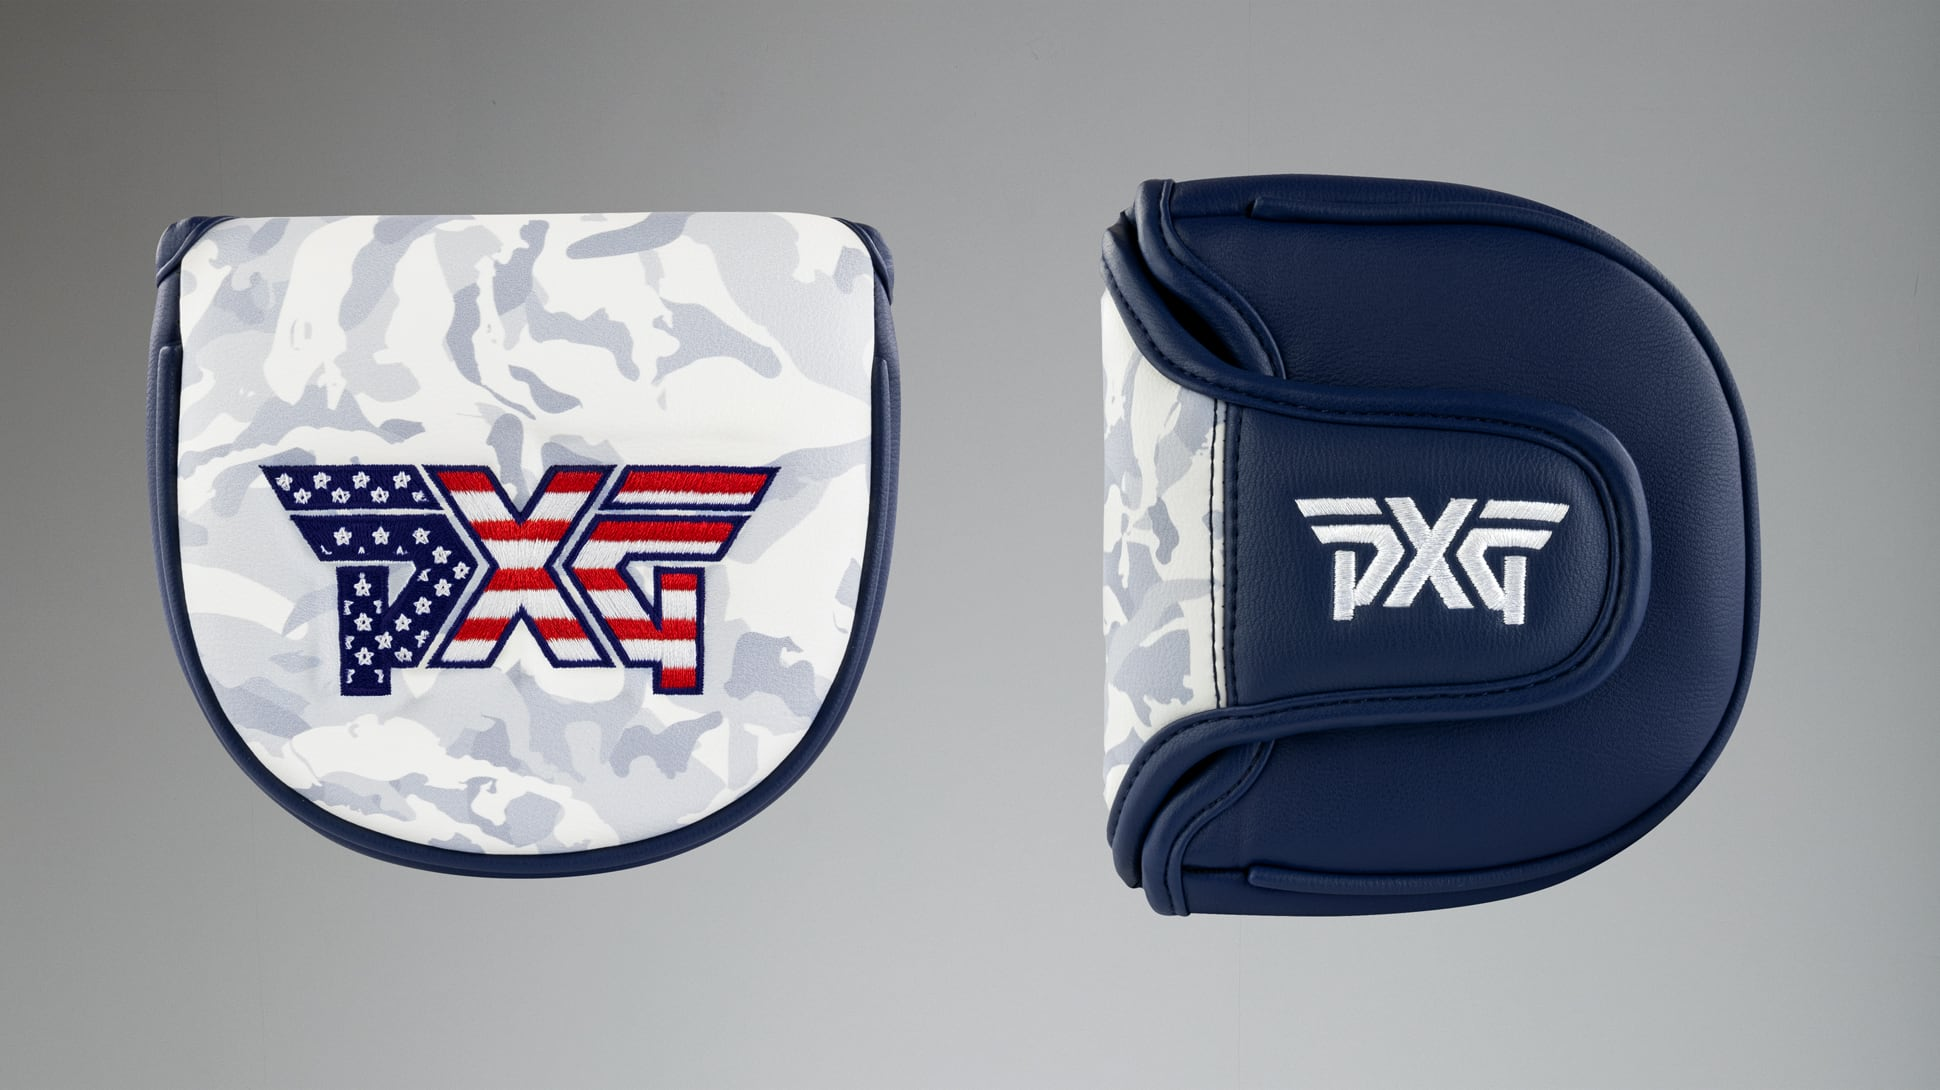 USA Mallet Headcover Image 1